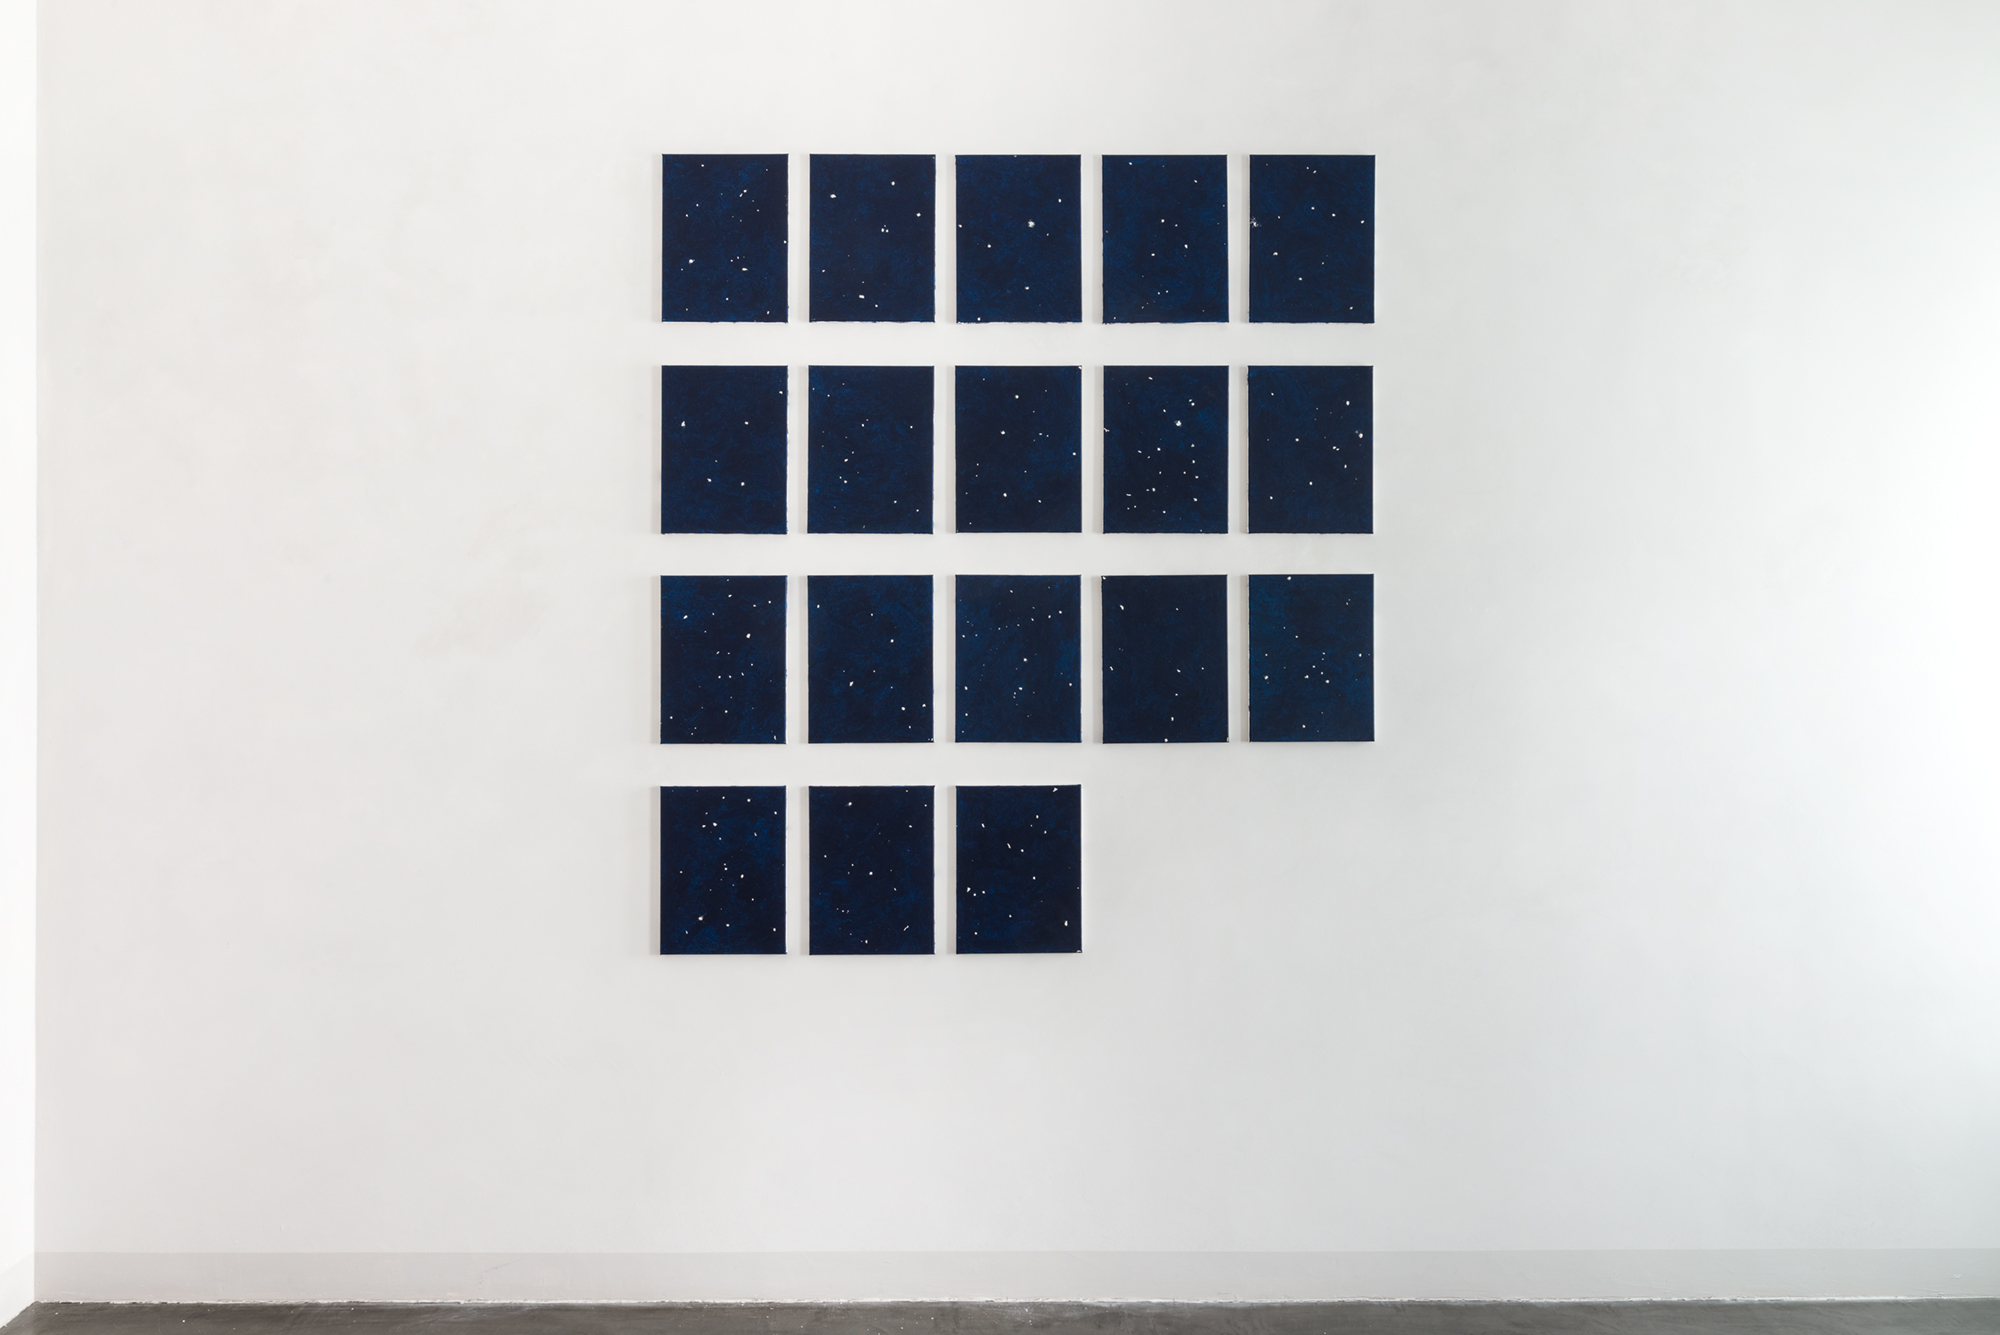 2. Davide Mancini Zanchi, Osiuco vista da 18 punti di vista differenti, 2017, Composition of 18 painting acrylics on canvas and papers ball with spittle, dimension variable